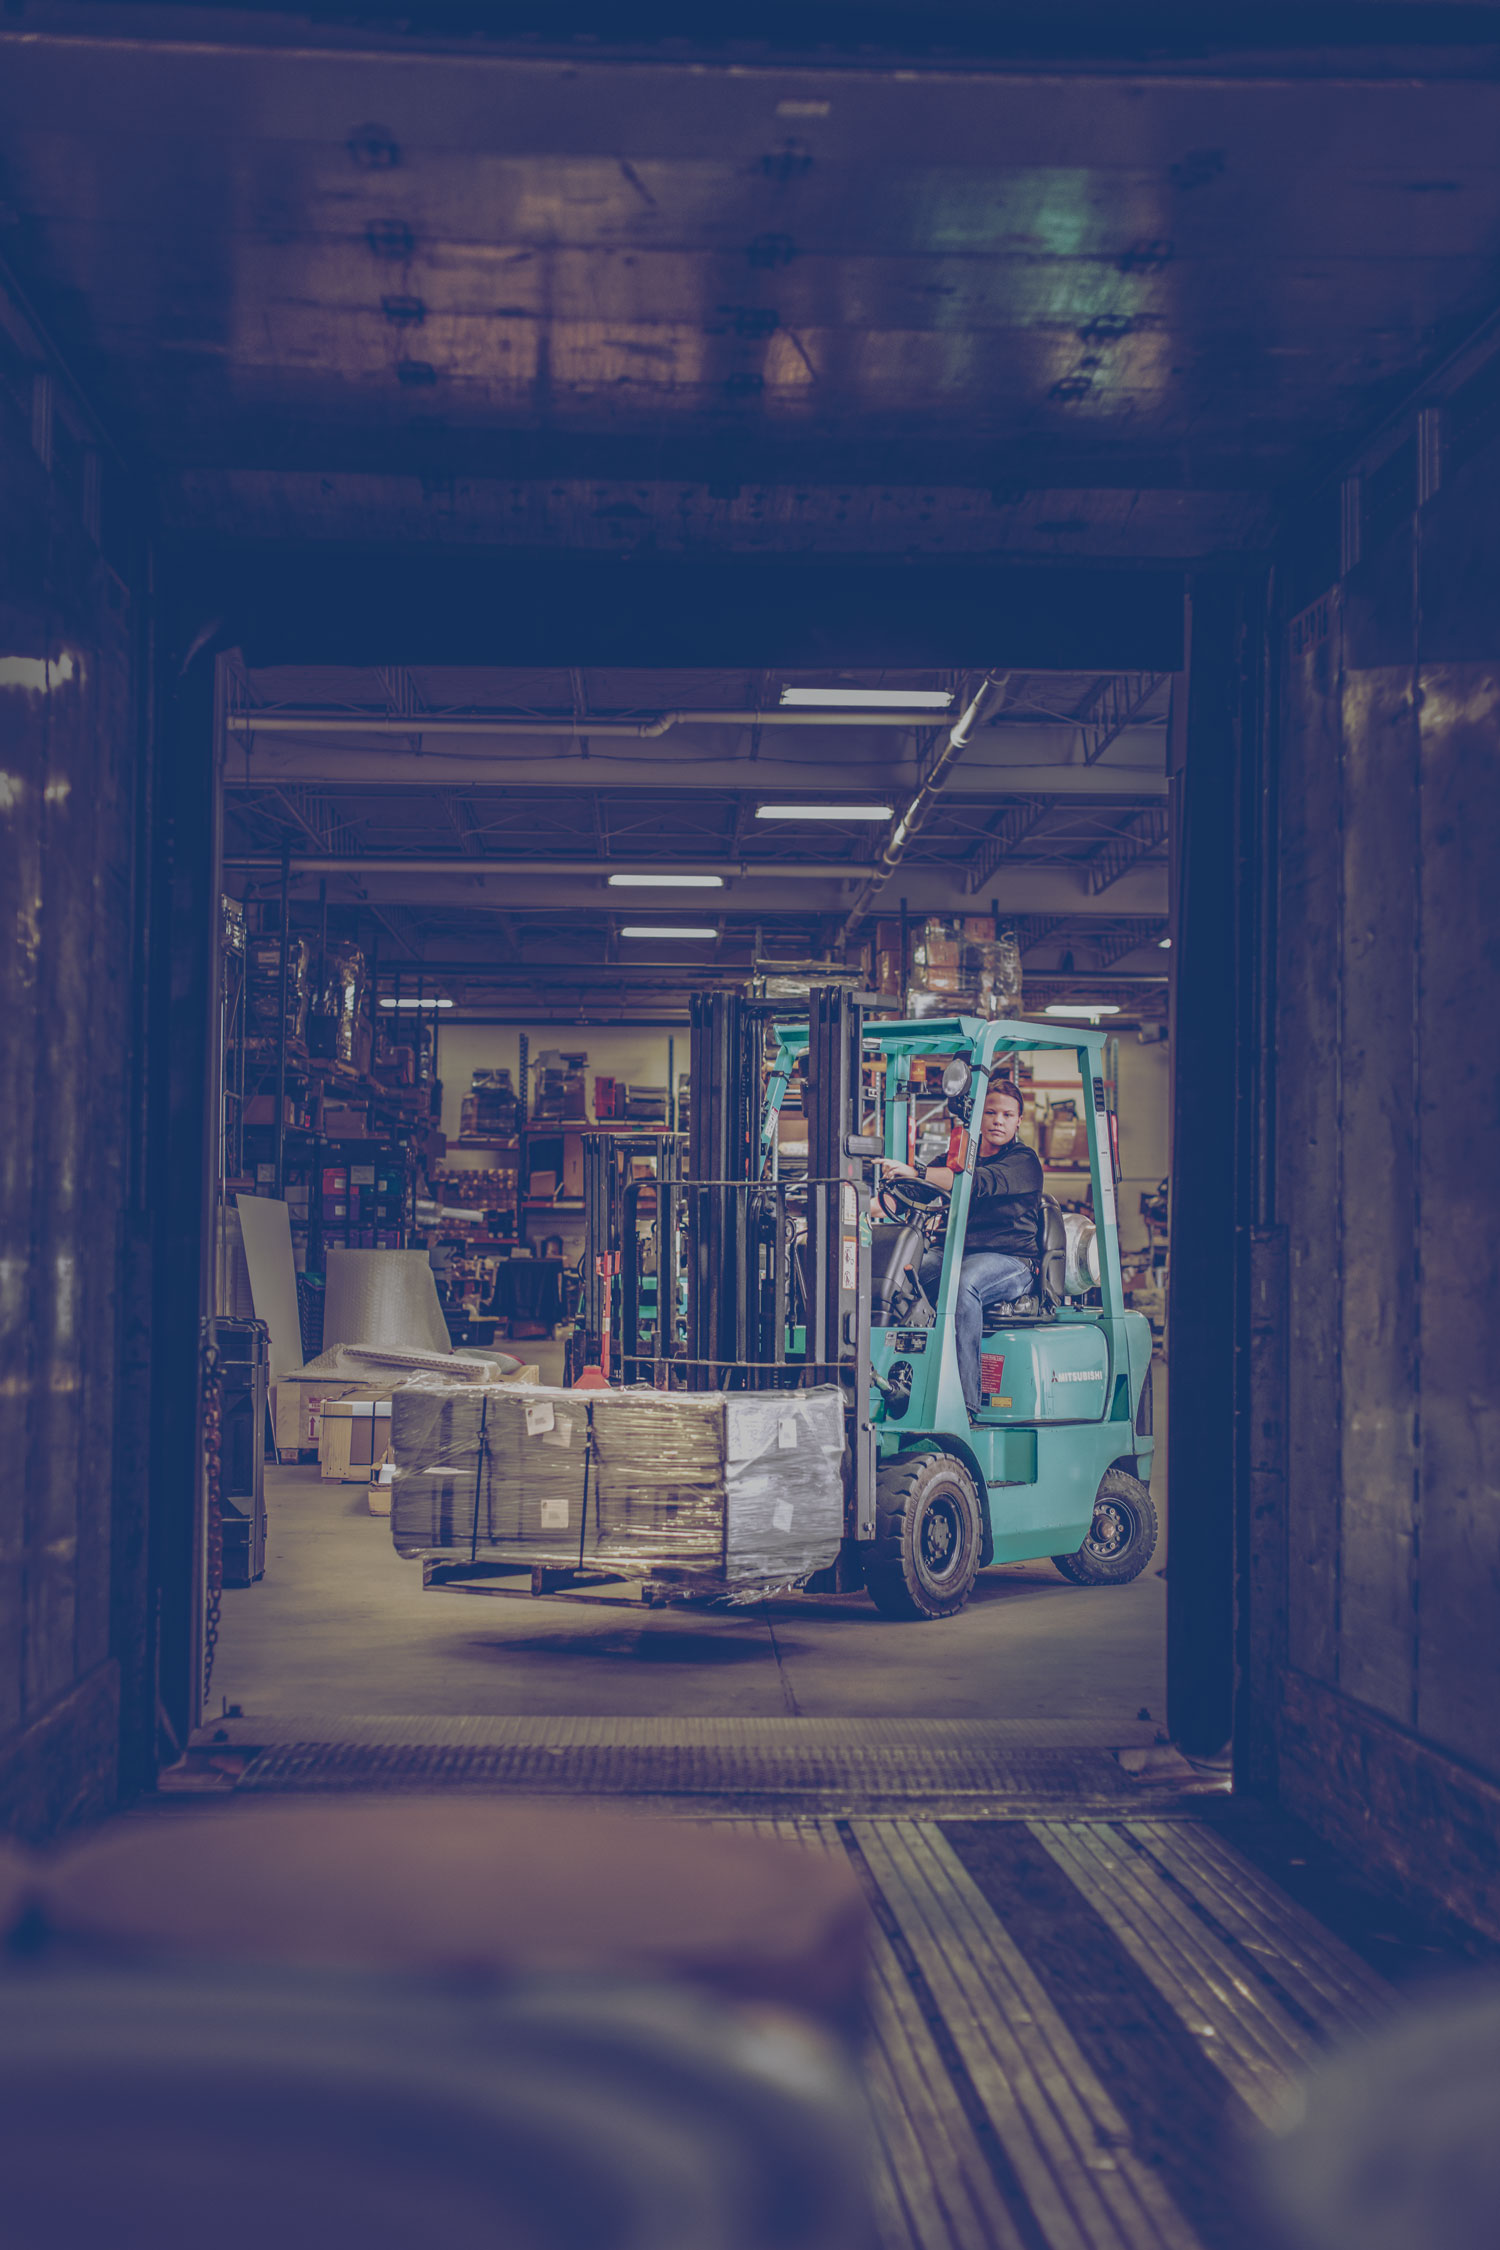 A propane-powered forklift in a warehouse filling a trailer with a pallet of goods.